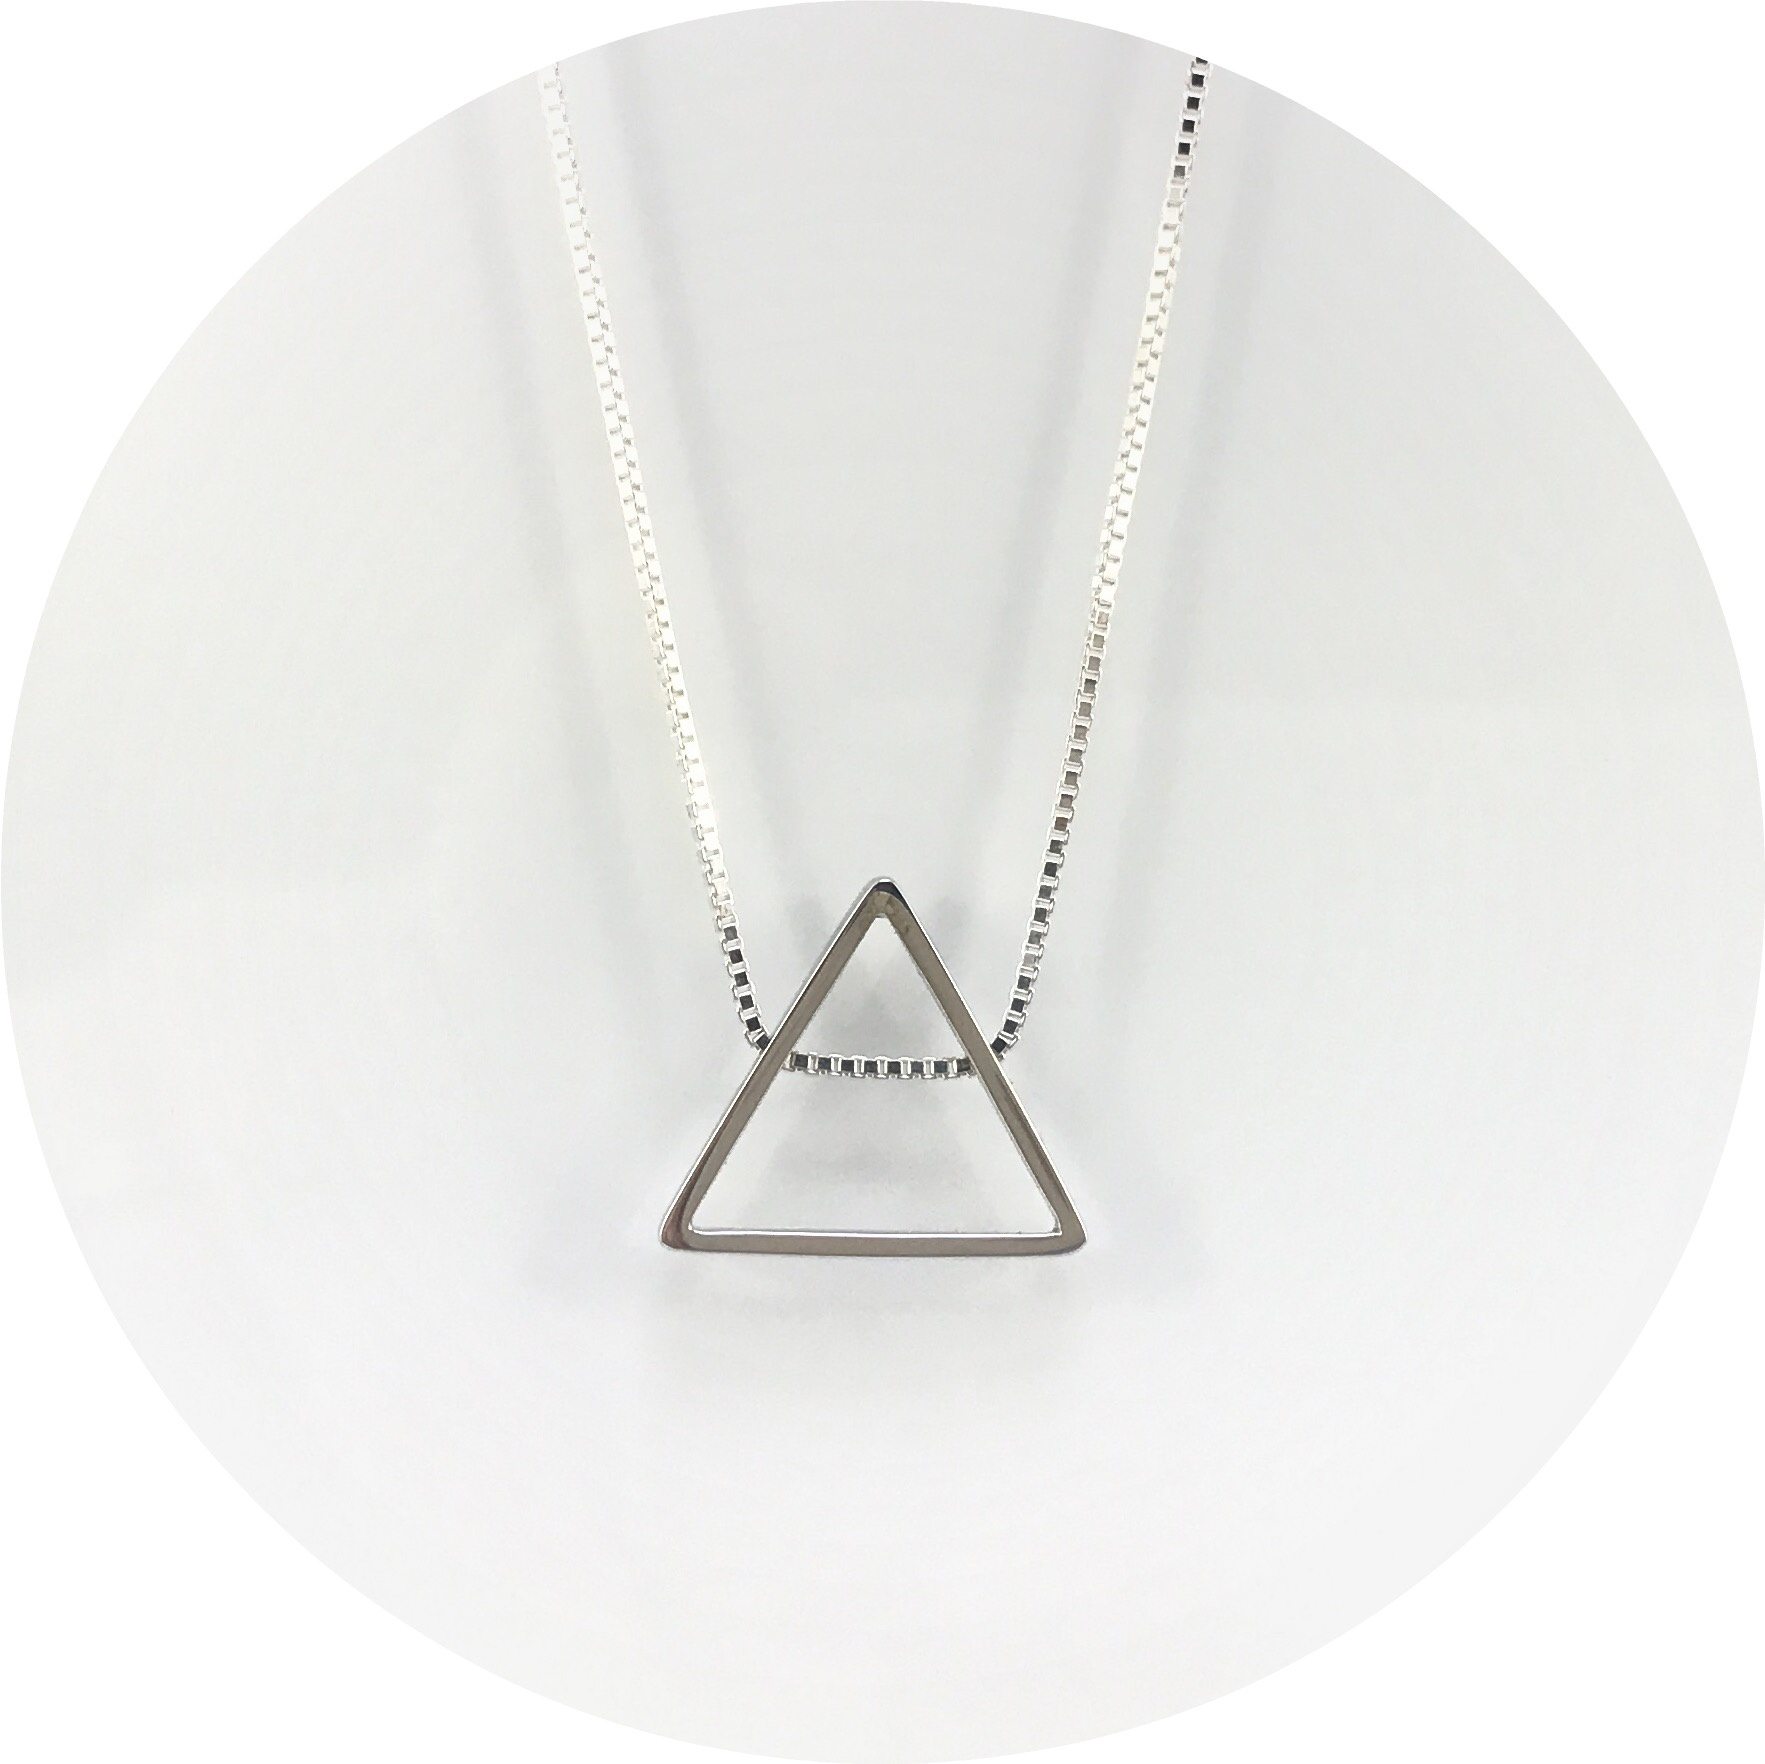 Orion Joel- Triangle sterling silver pendant with 45cm box chain included.